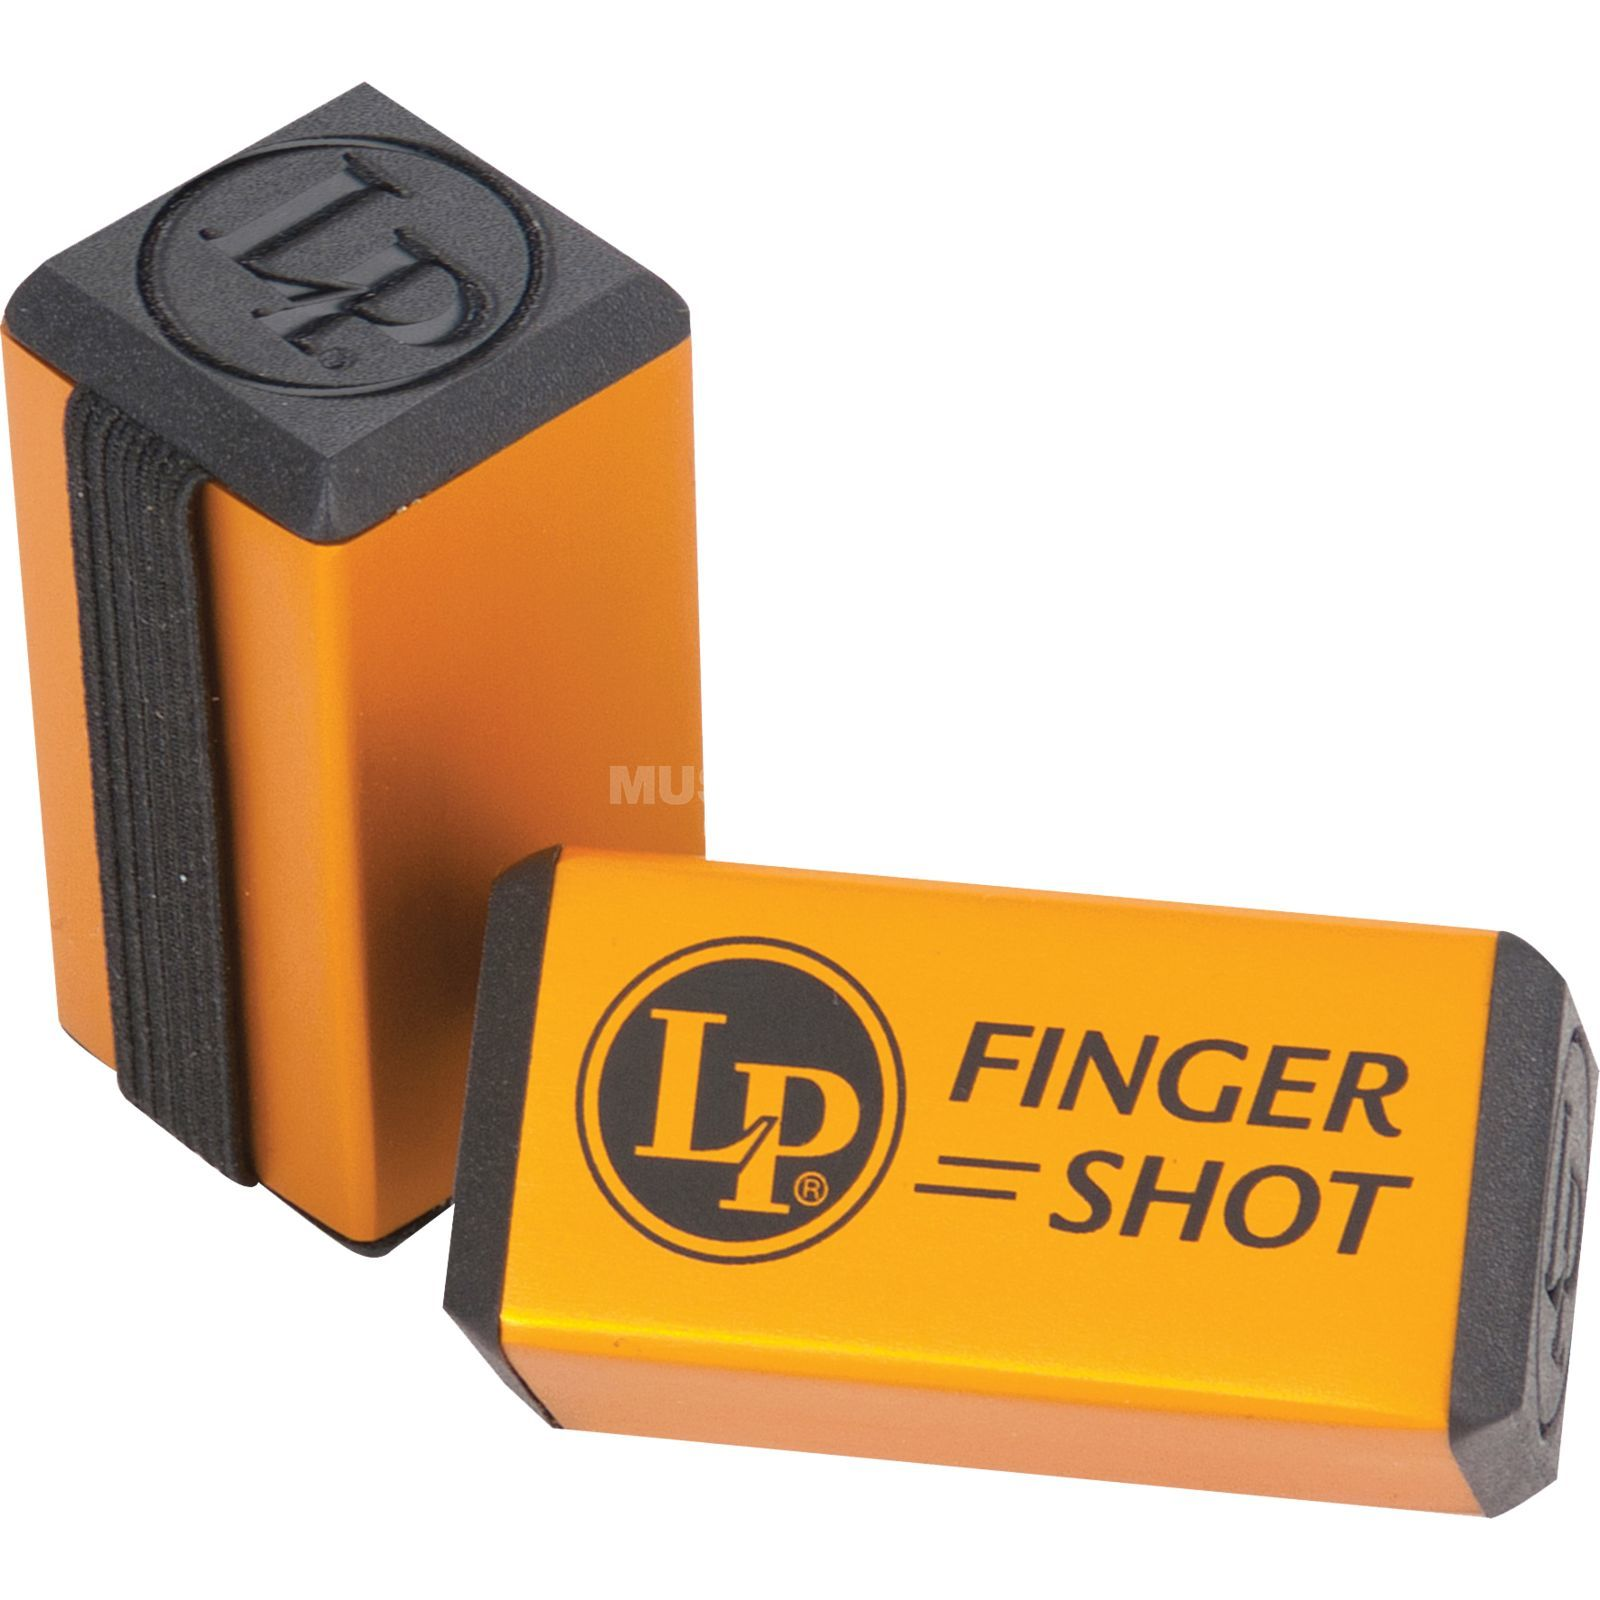 Latin Percussion Finger Shot Shaker LP442F, 1 Stk. Produktbild